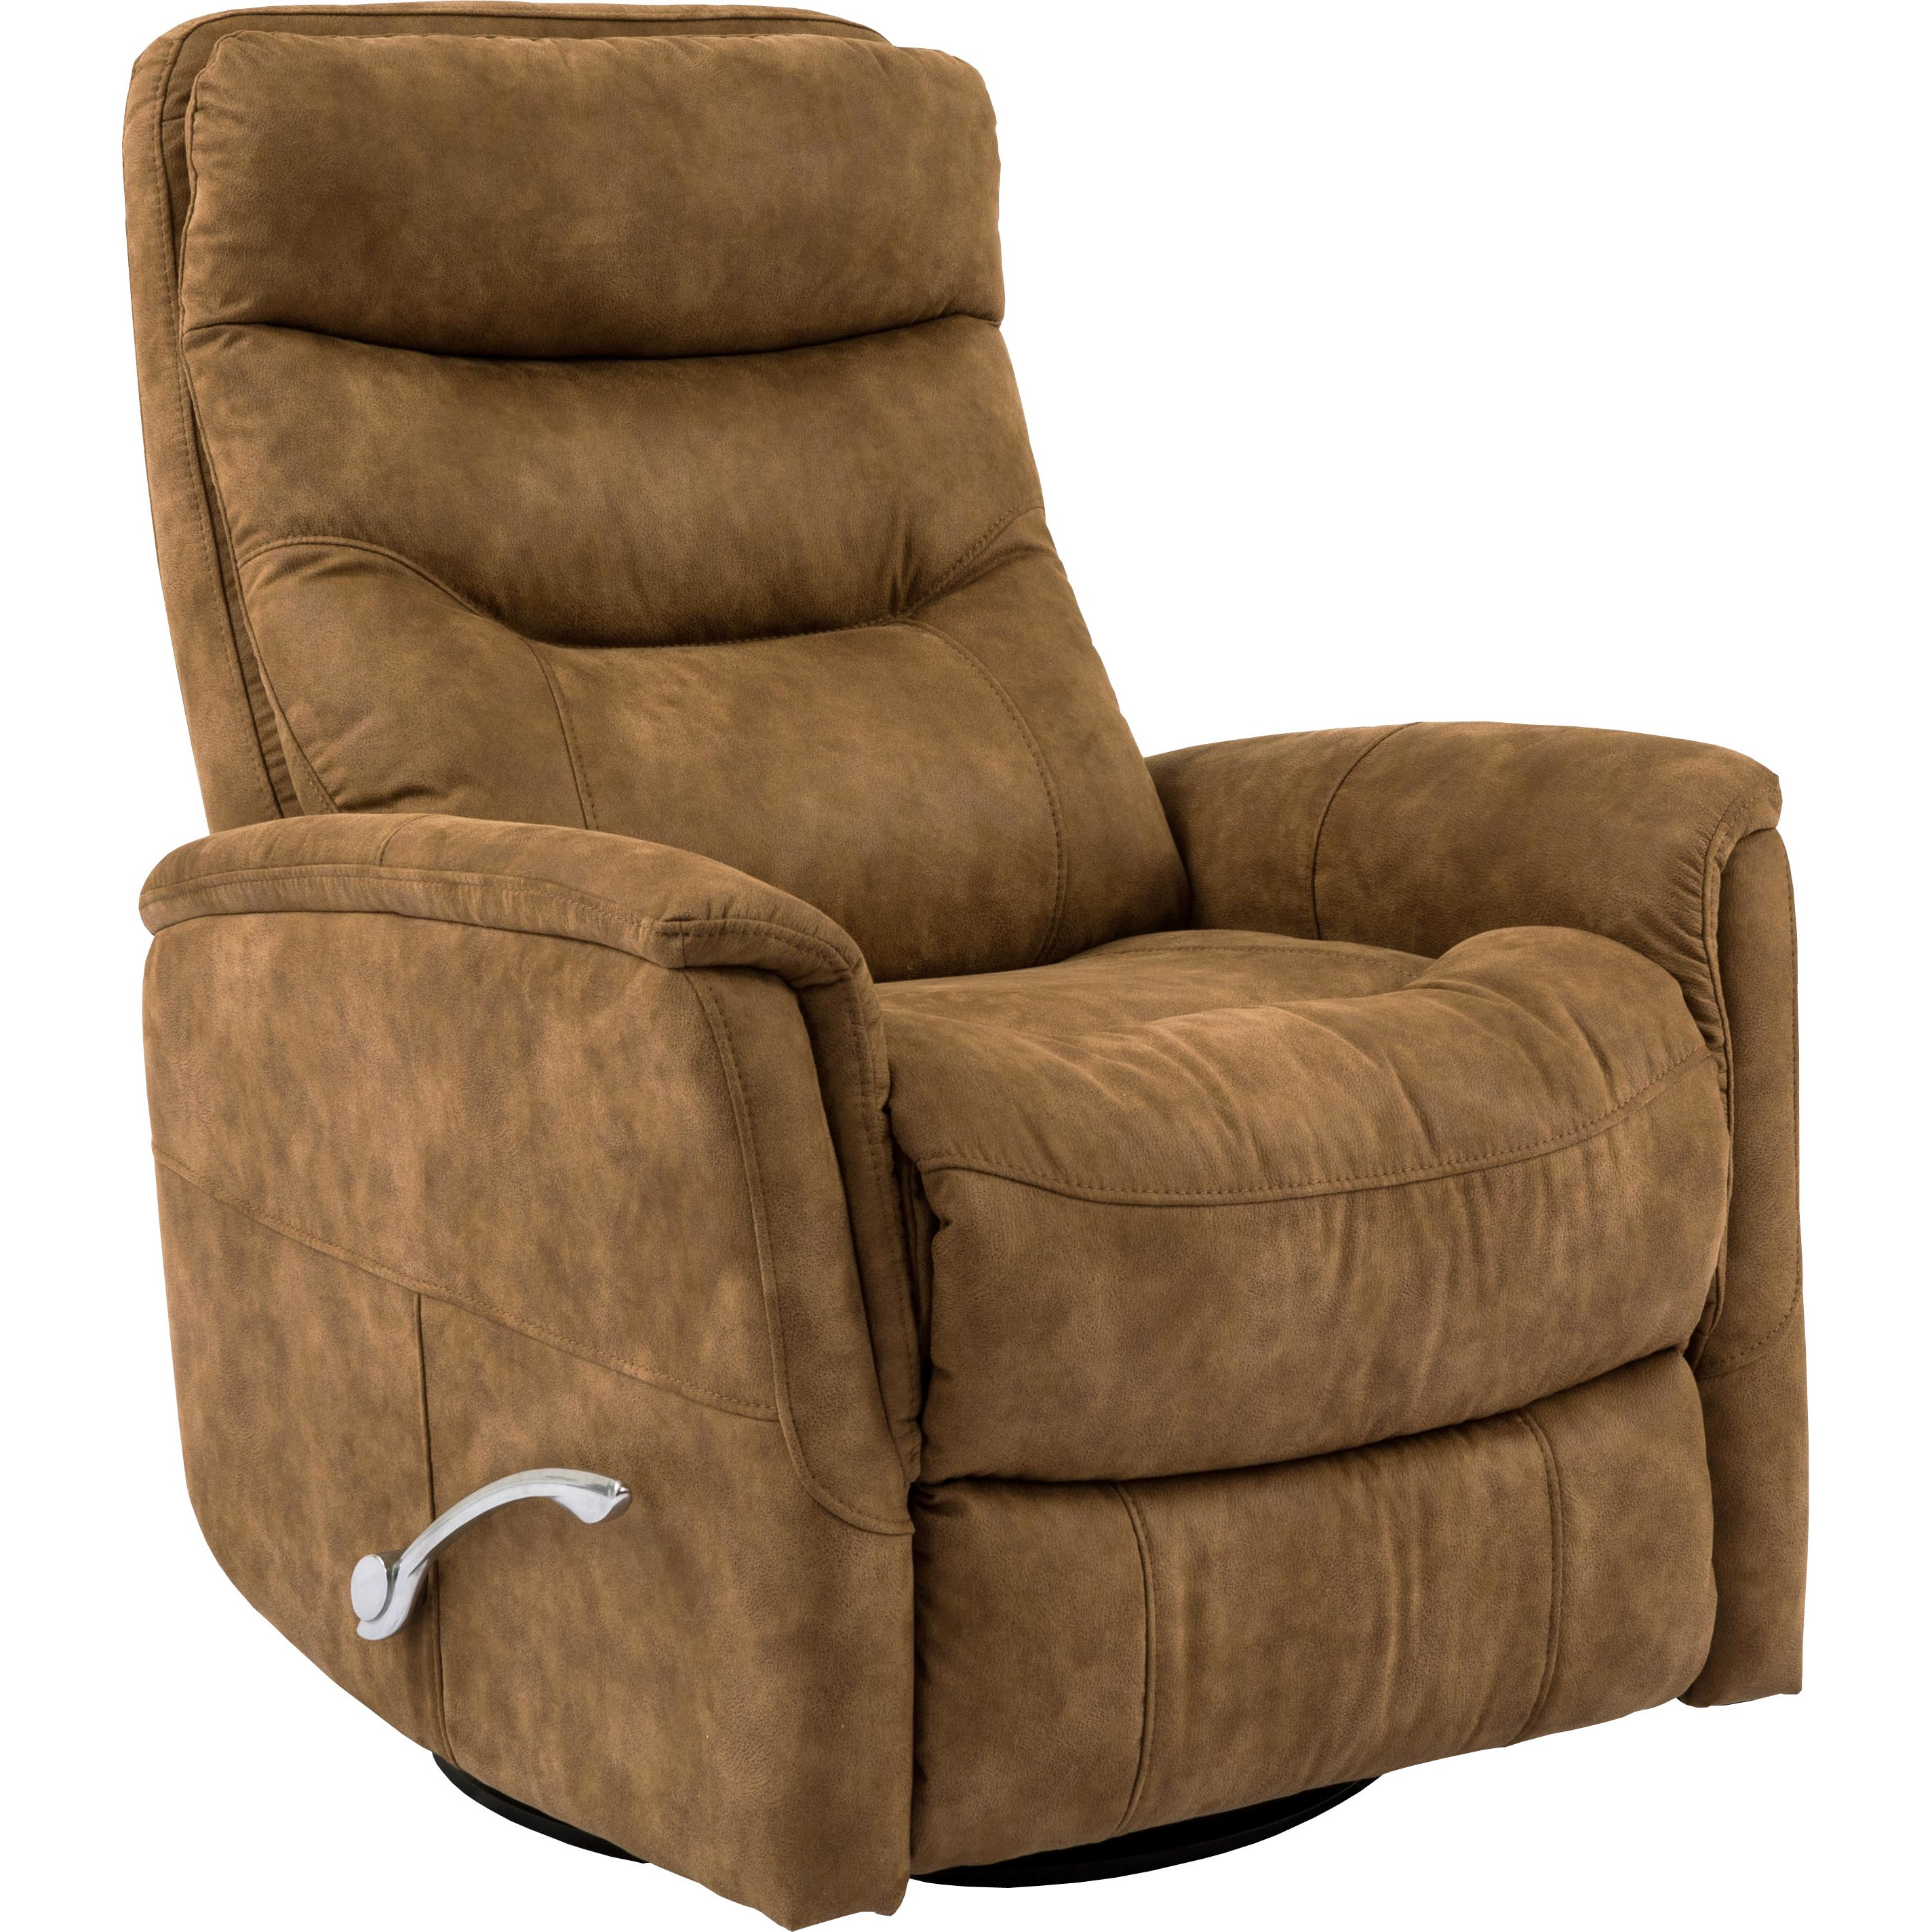 Leather Glider Recliner Nursery | Nursery Rocking Chair | Glider Recliner